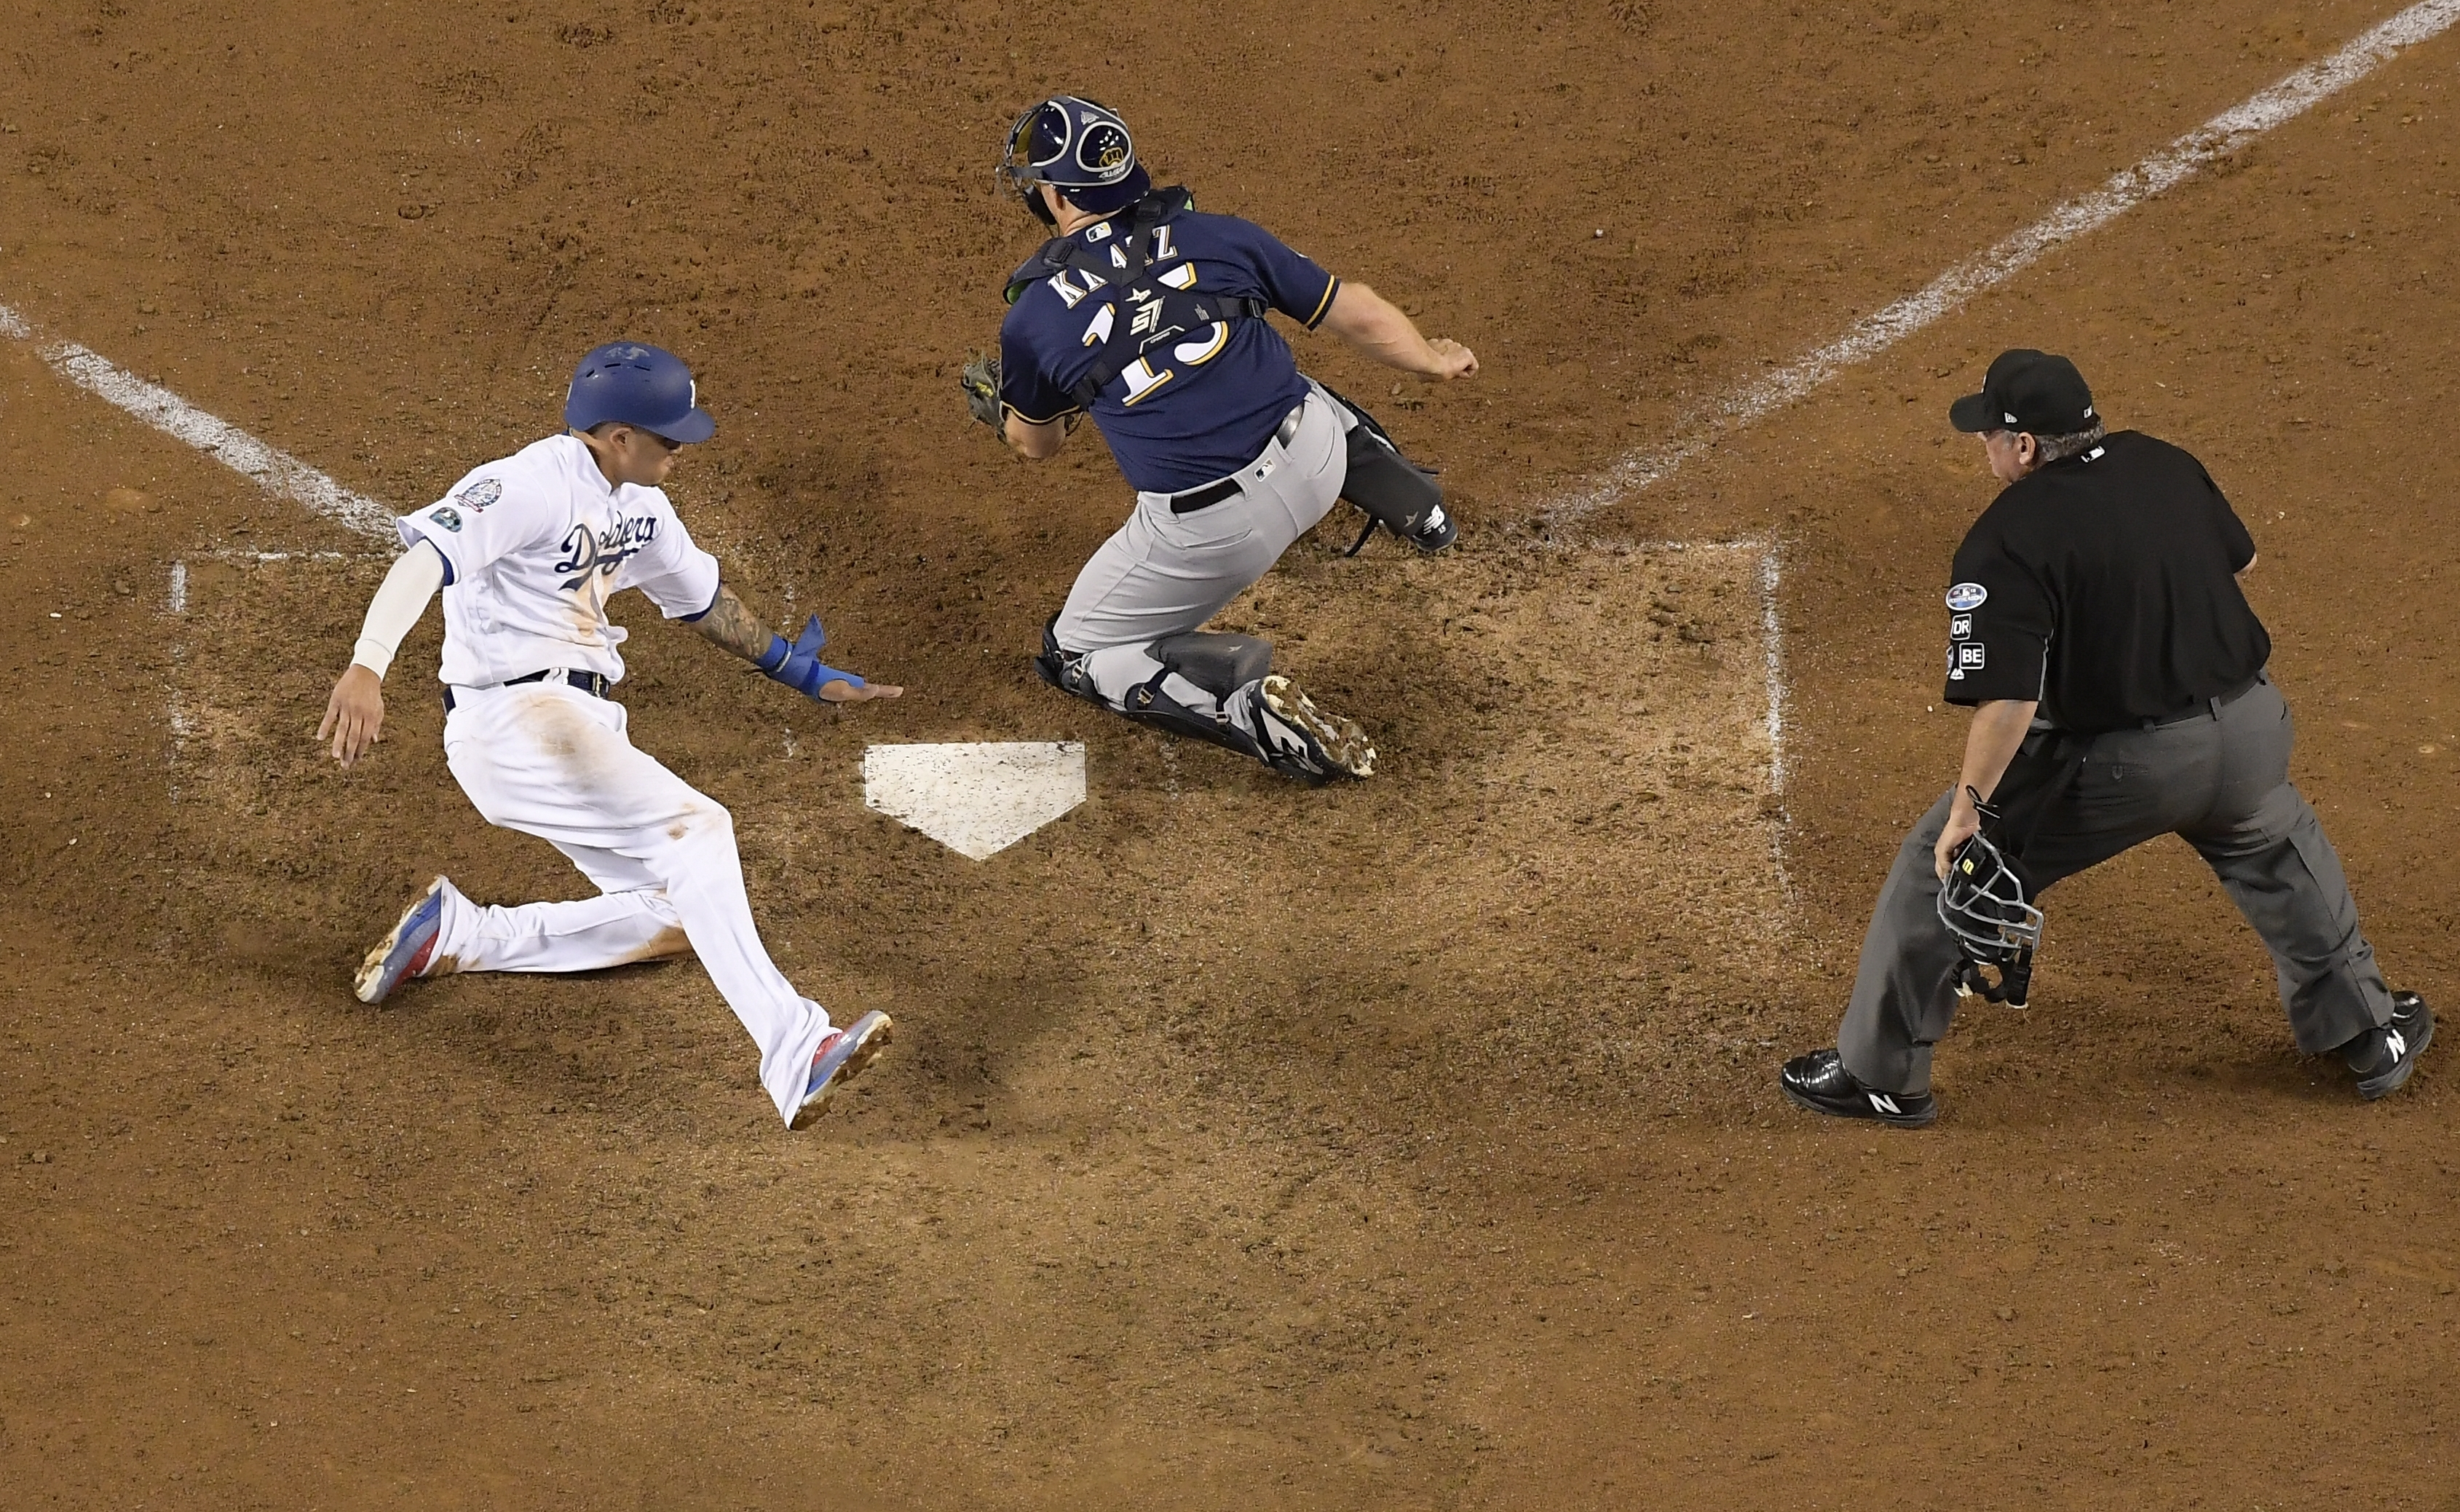 <div class='meta'><div class='origin-logo' data-origin='AP'></div><span class='caption-text' data-credit='AP Photo/Mark J. Terrill'>Dodgers' Manny Machado scores past Milwaukee Brewers catcher Erik Kratz during the 13th inning of Game 4 of the NLCS.</span></div>